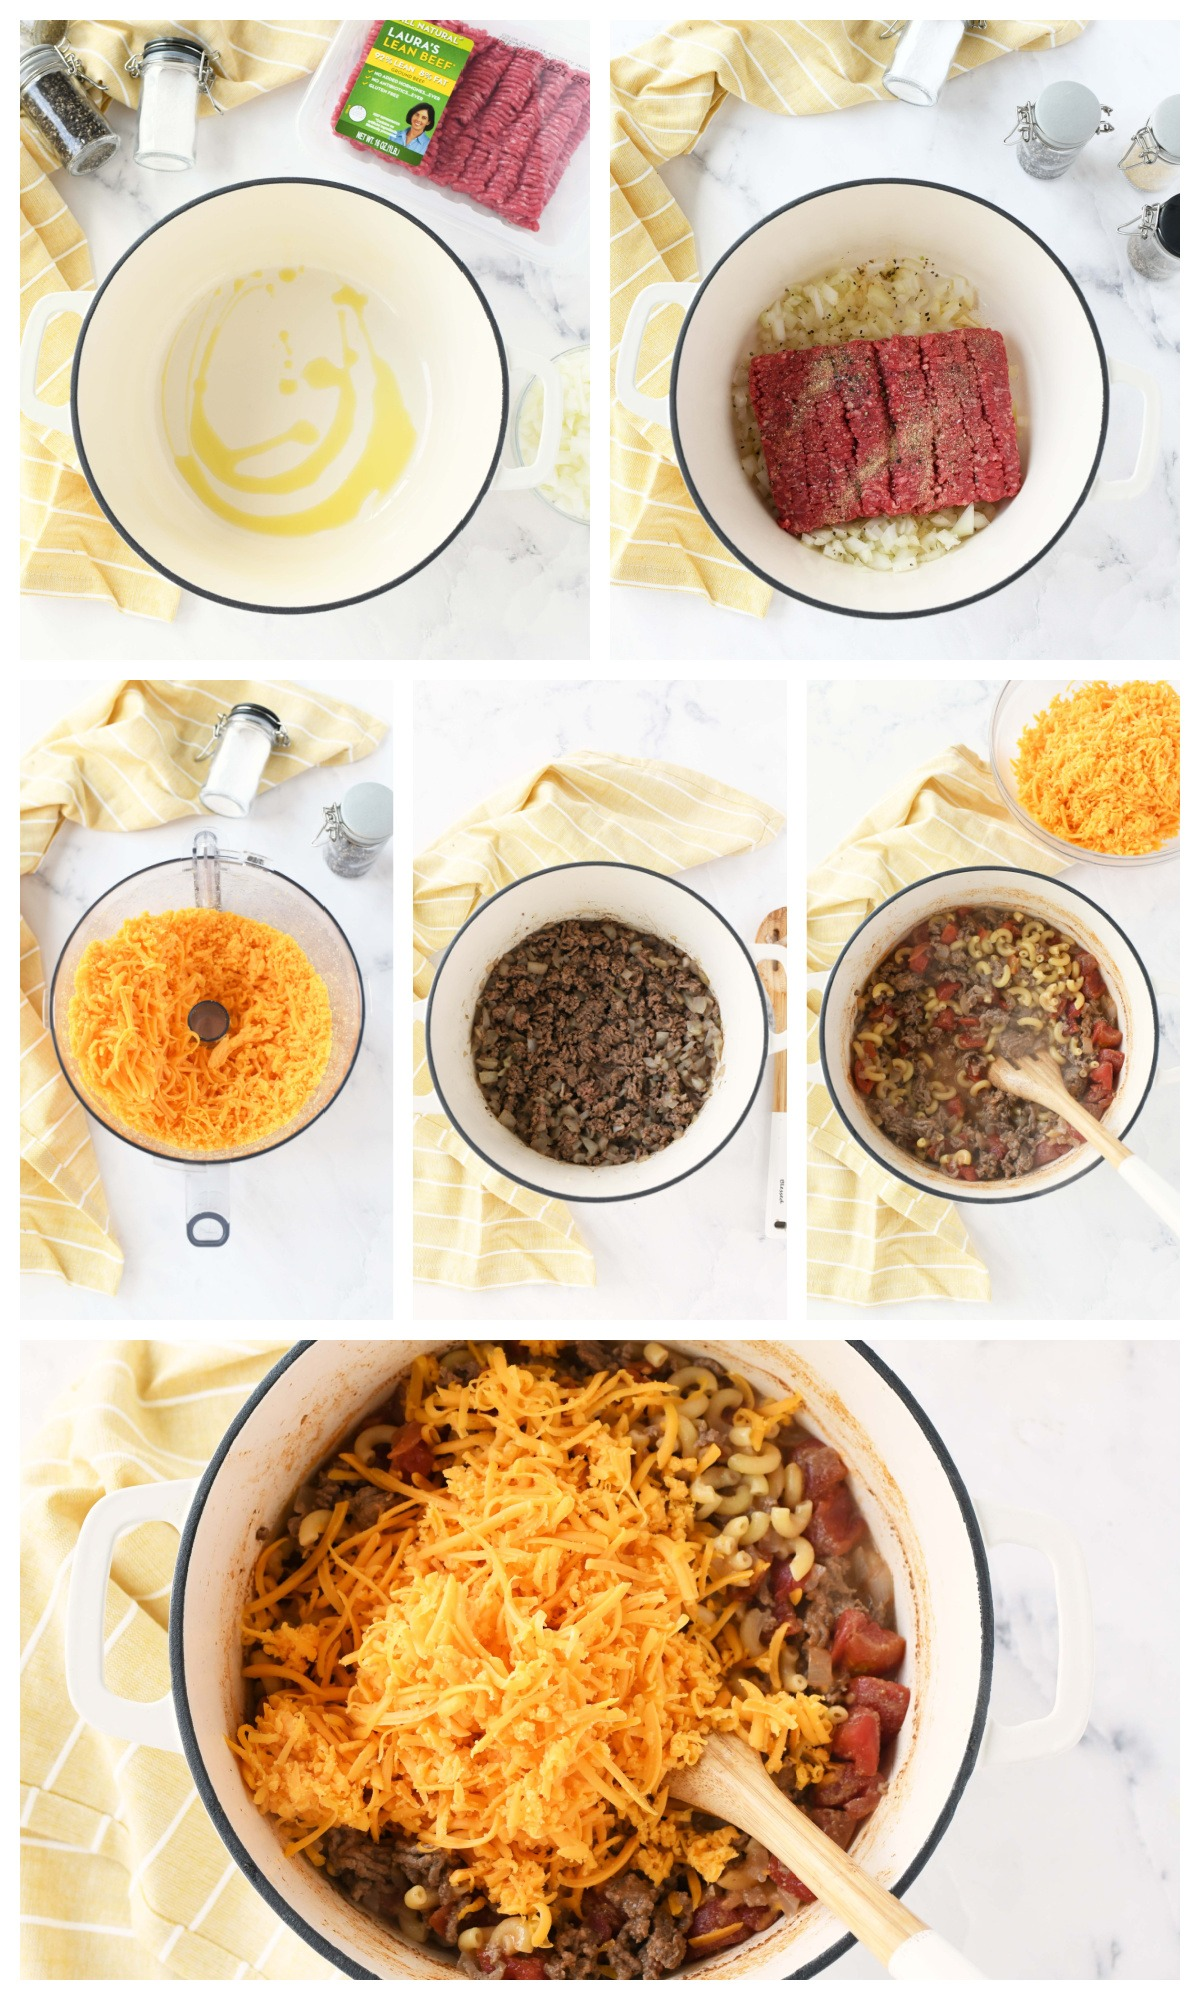 A 6 image collage showing how to make Cheesy Beef Pasta